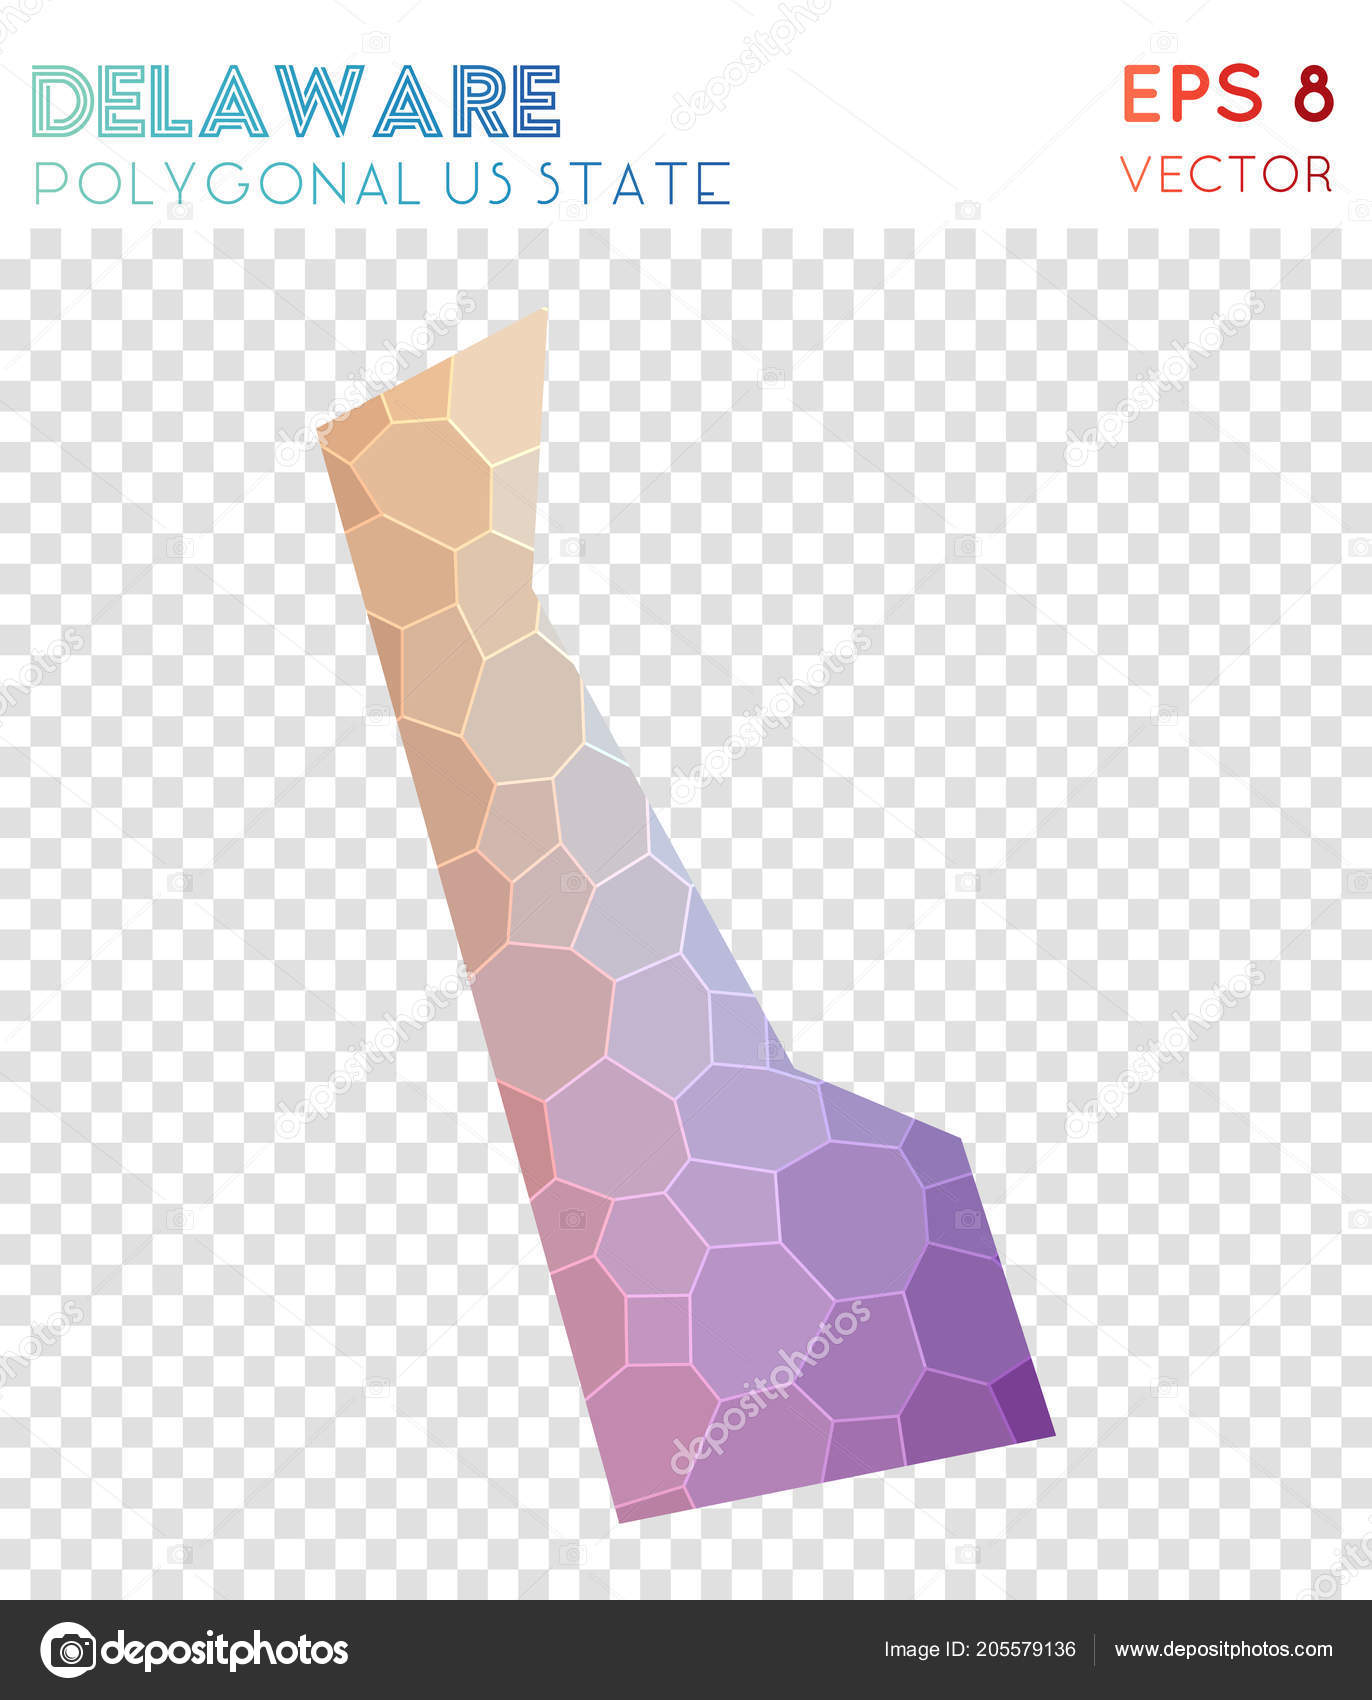 Delaware Polygonal Map, Mosaic Style Us State. Superb Low Poly Style,  Modern Design. Delaware Polygonal Map For Infographics Or Presentation. U2014  Vetor De ...